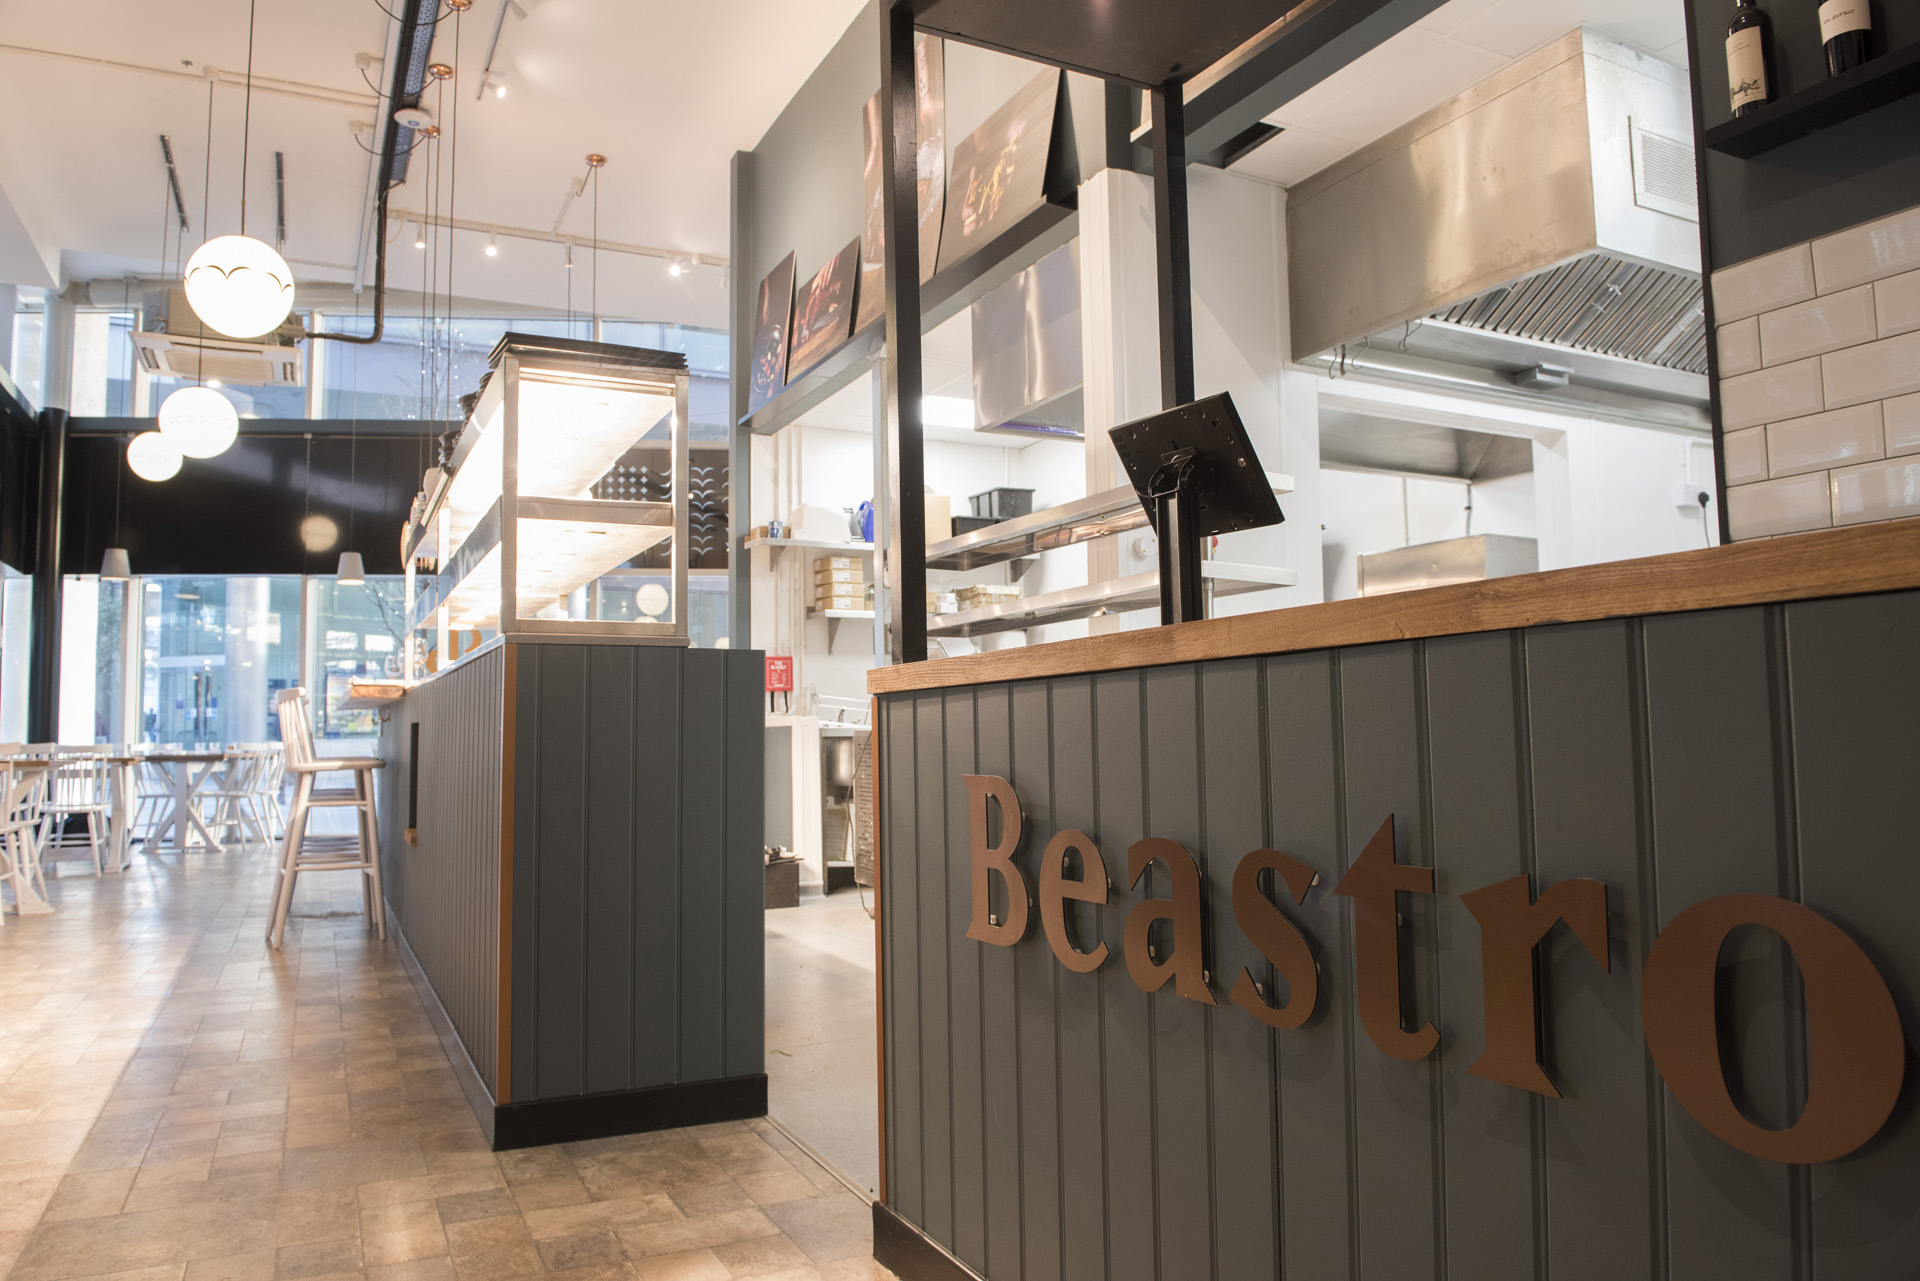 New restaurant Beastro opens in Spinningfields